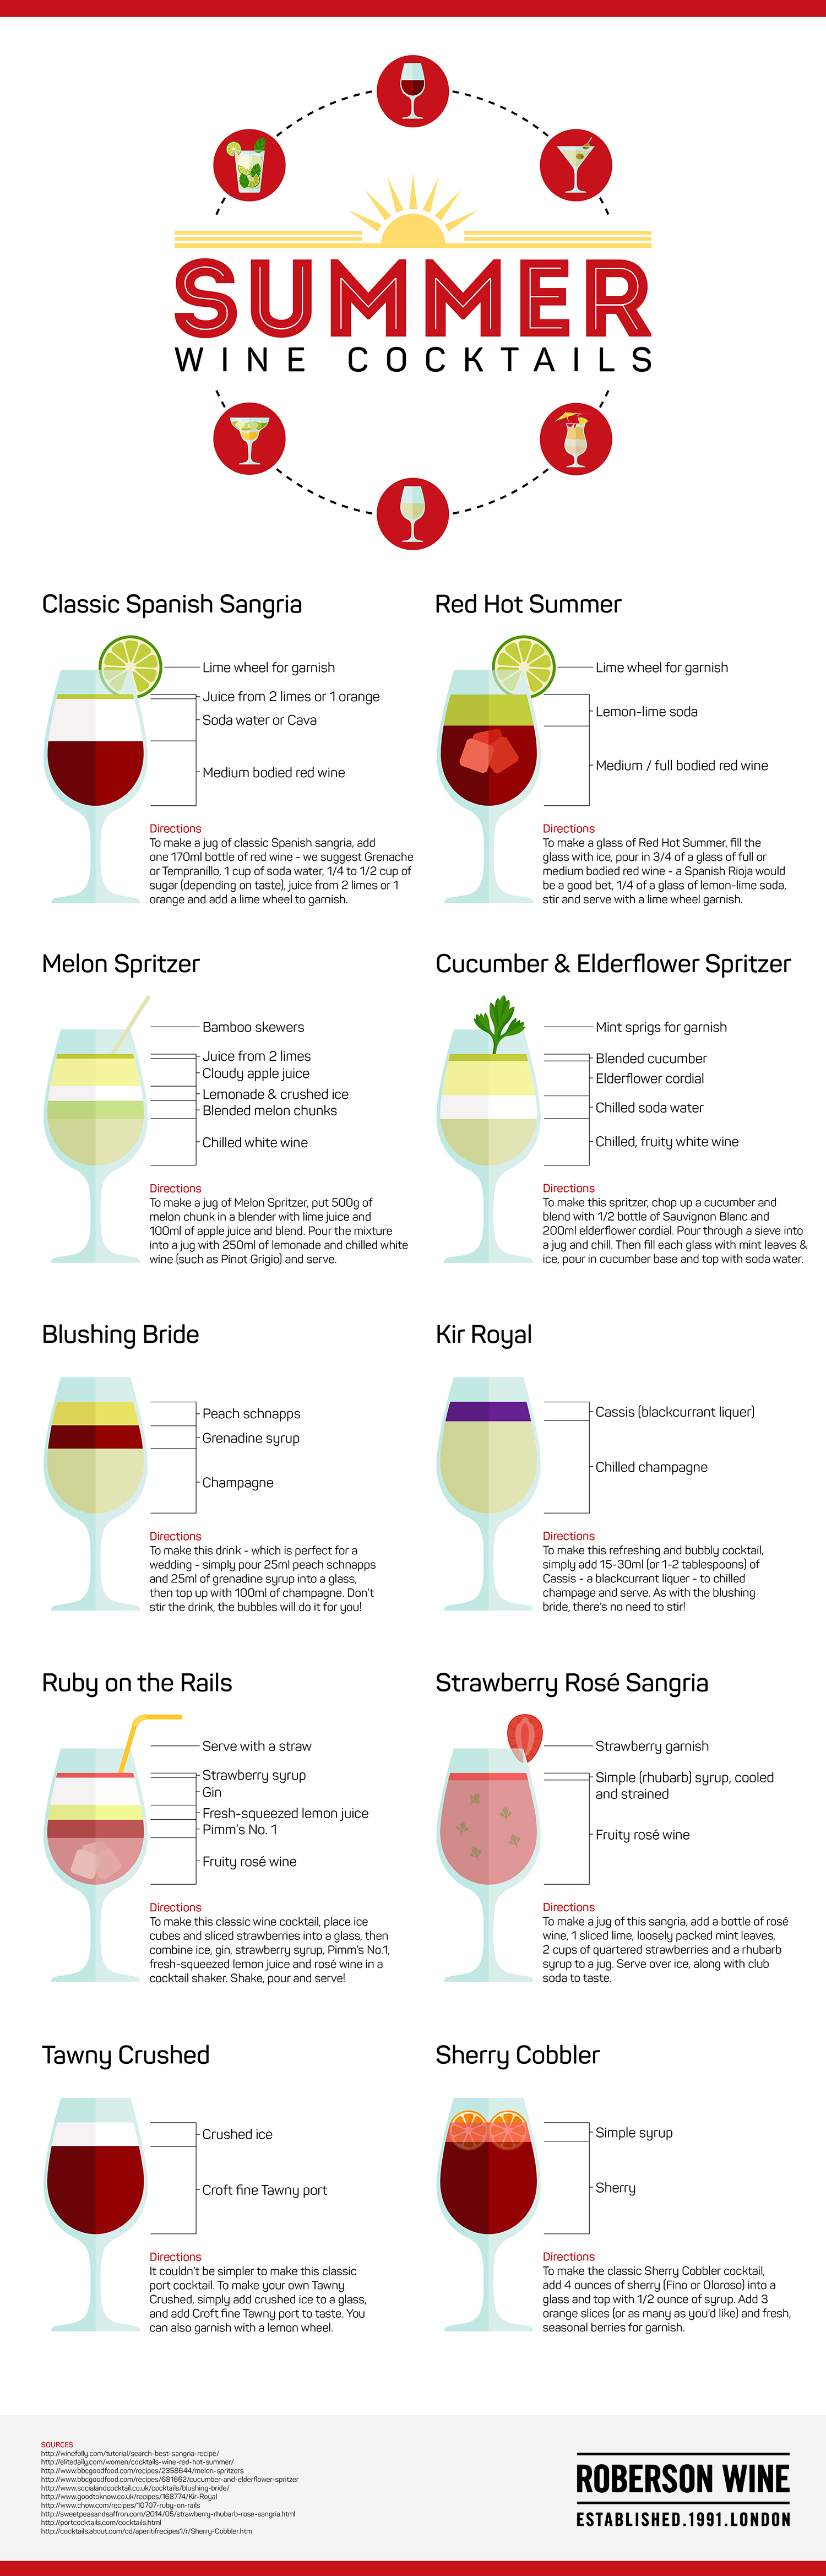 Summer Wine Cocktails Robersons Wine_Final